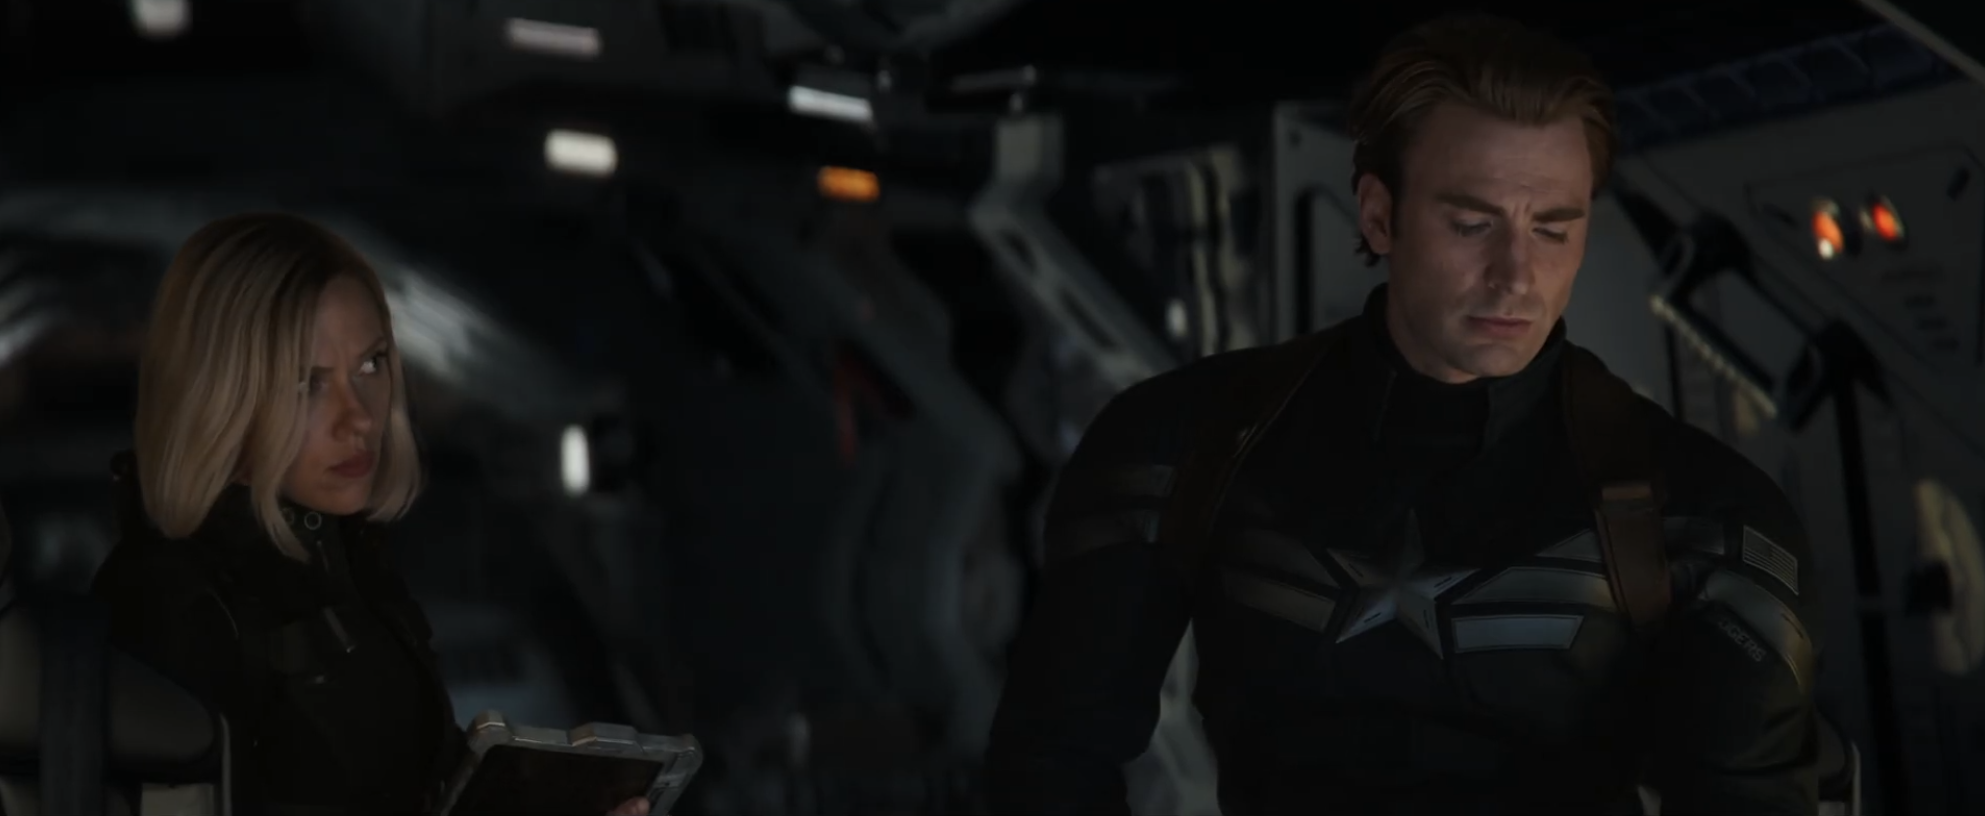 Avengers Endgame Trailer Captain America Black Widow